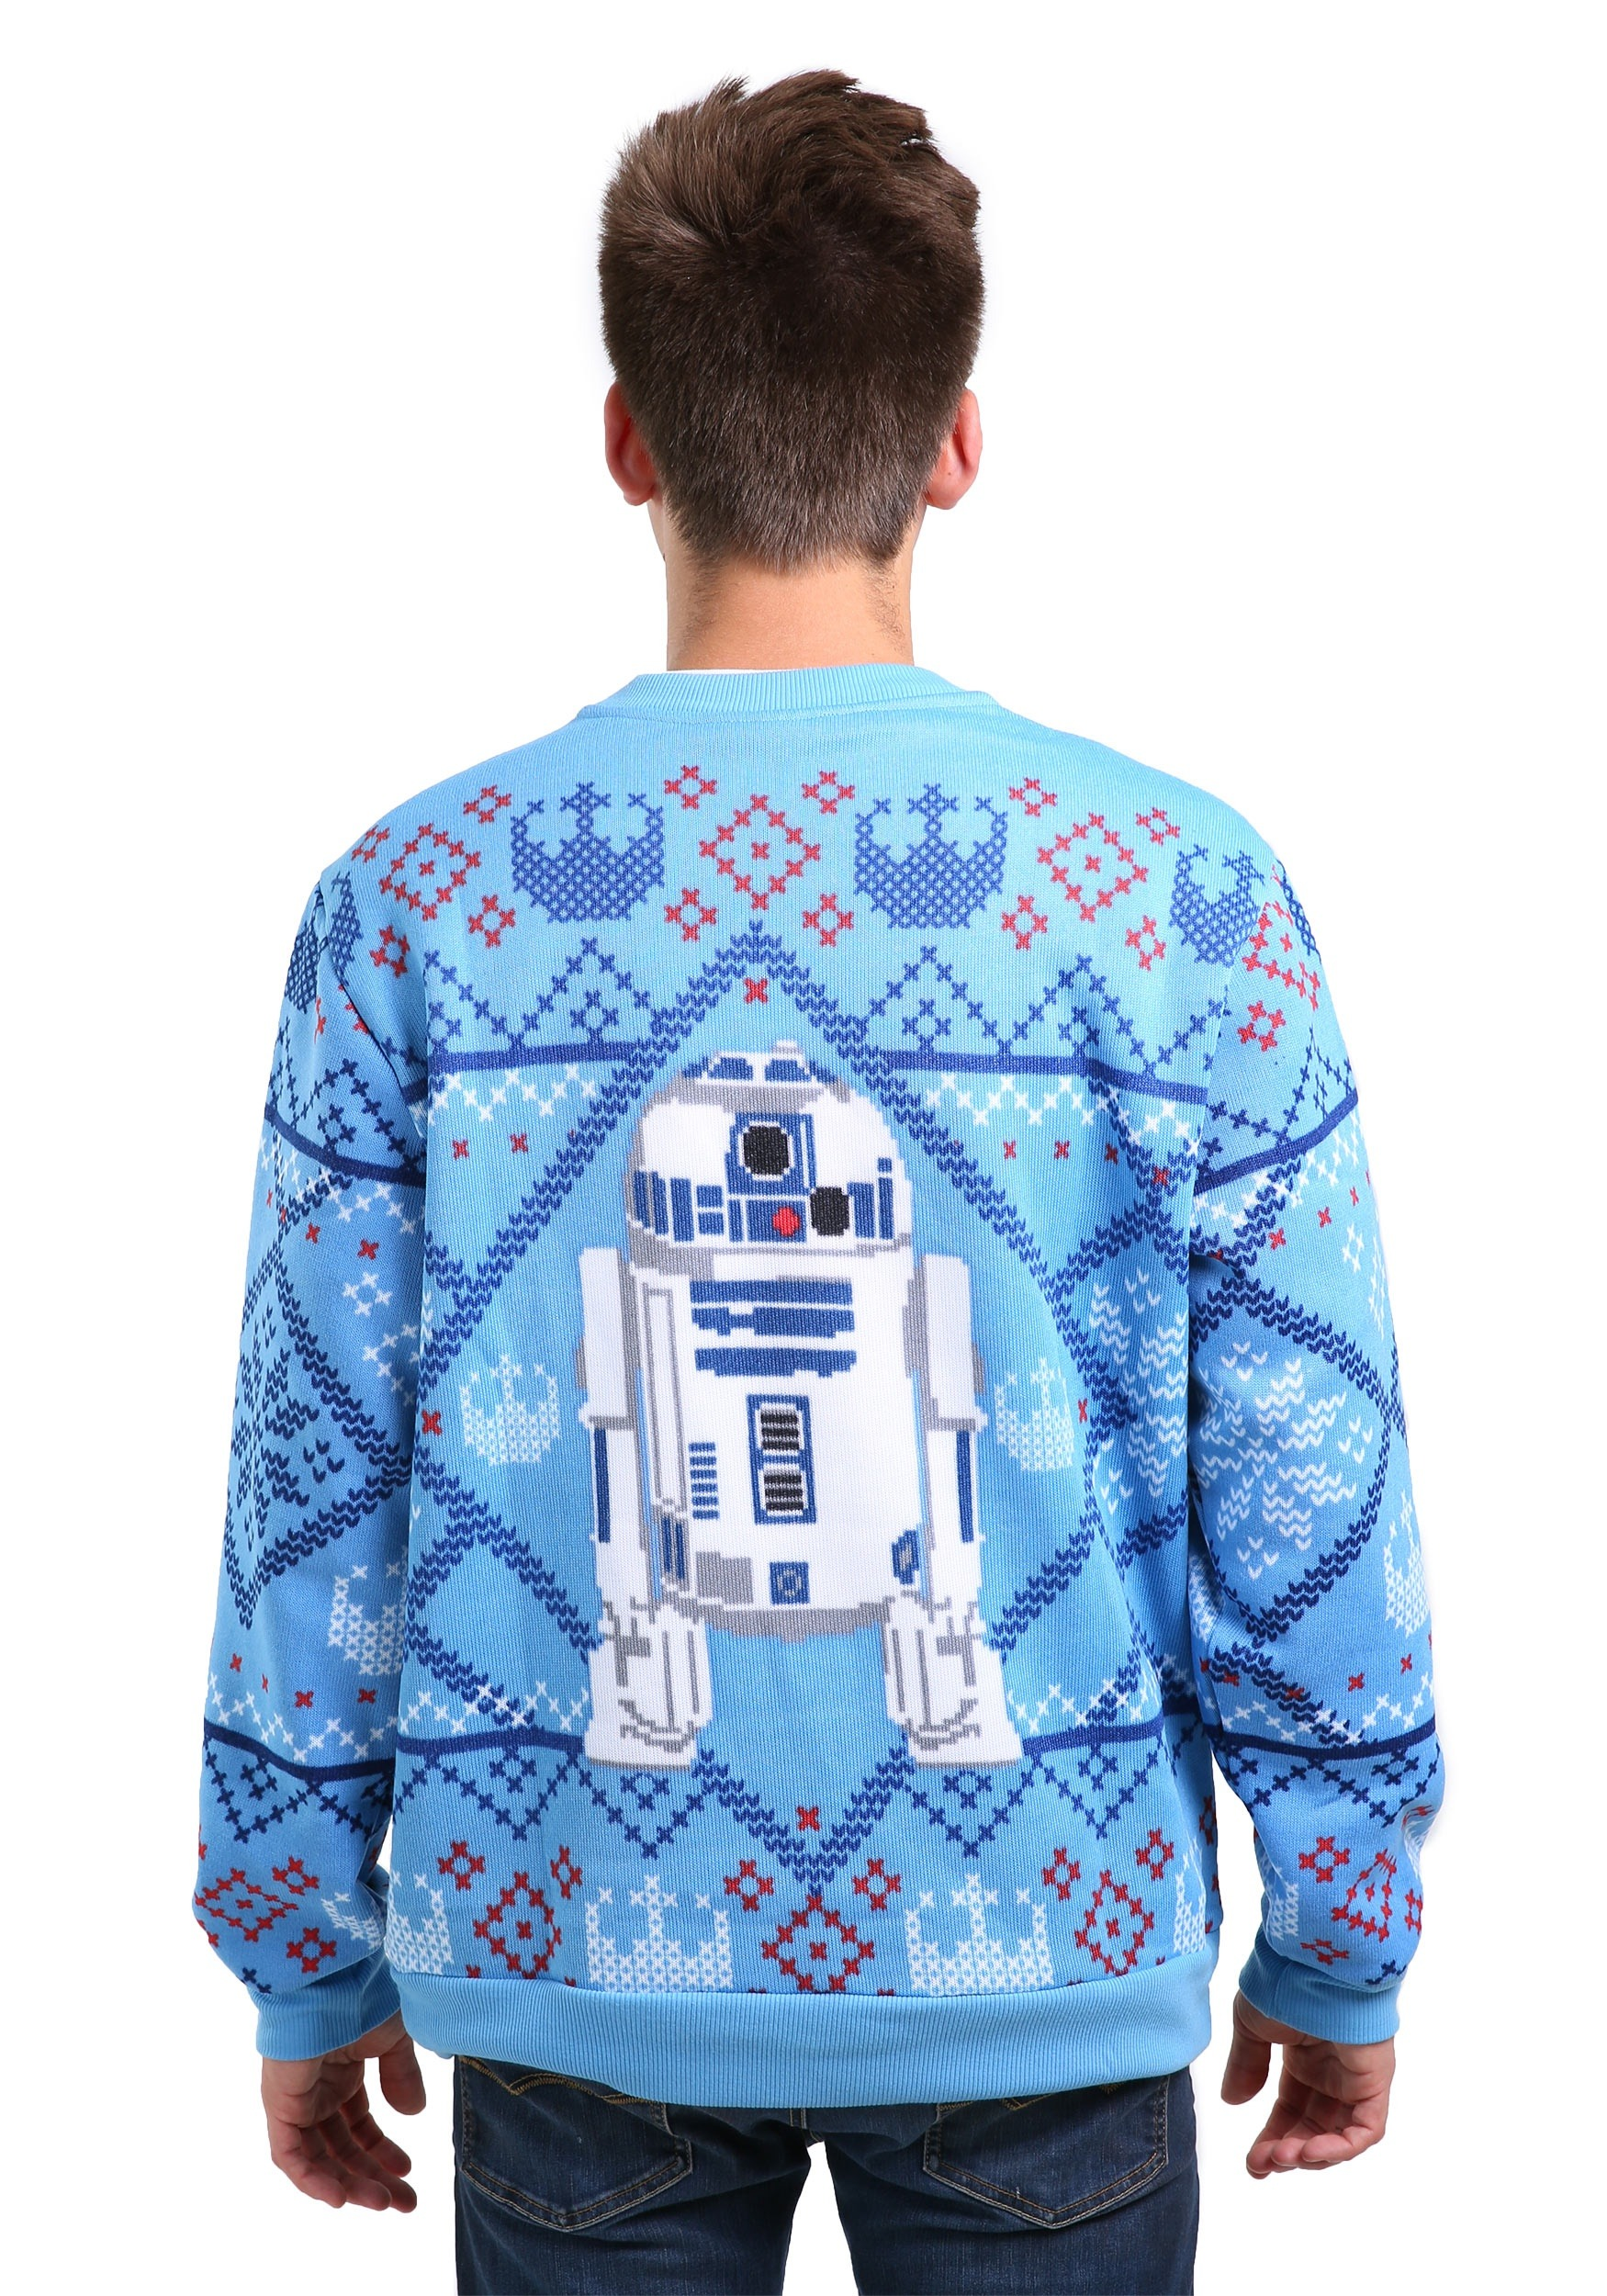 Star Wars Cozy Artoo Ugly X-Mas Sweater for Men